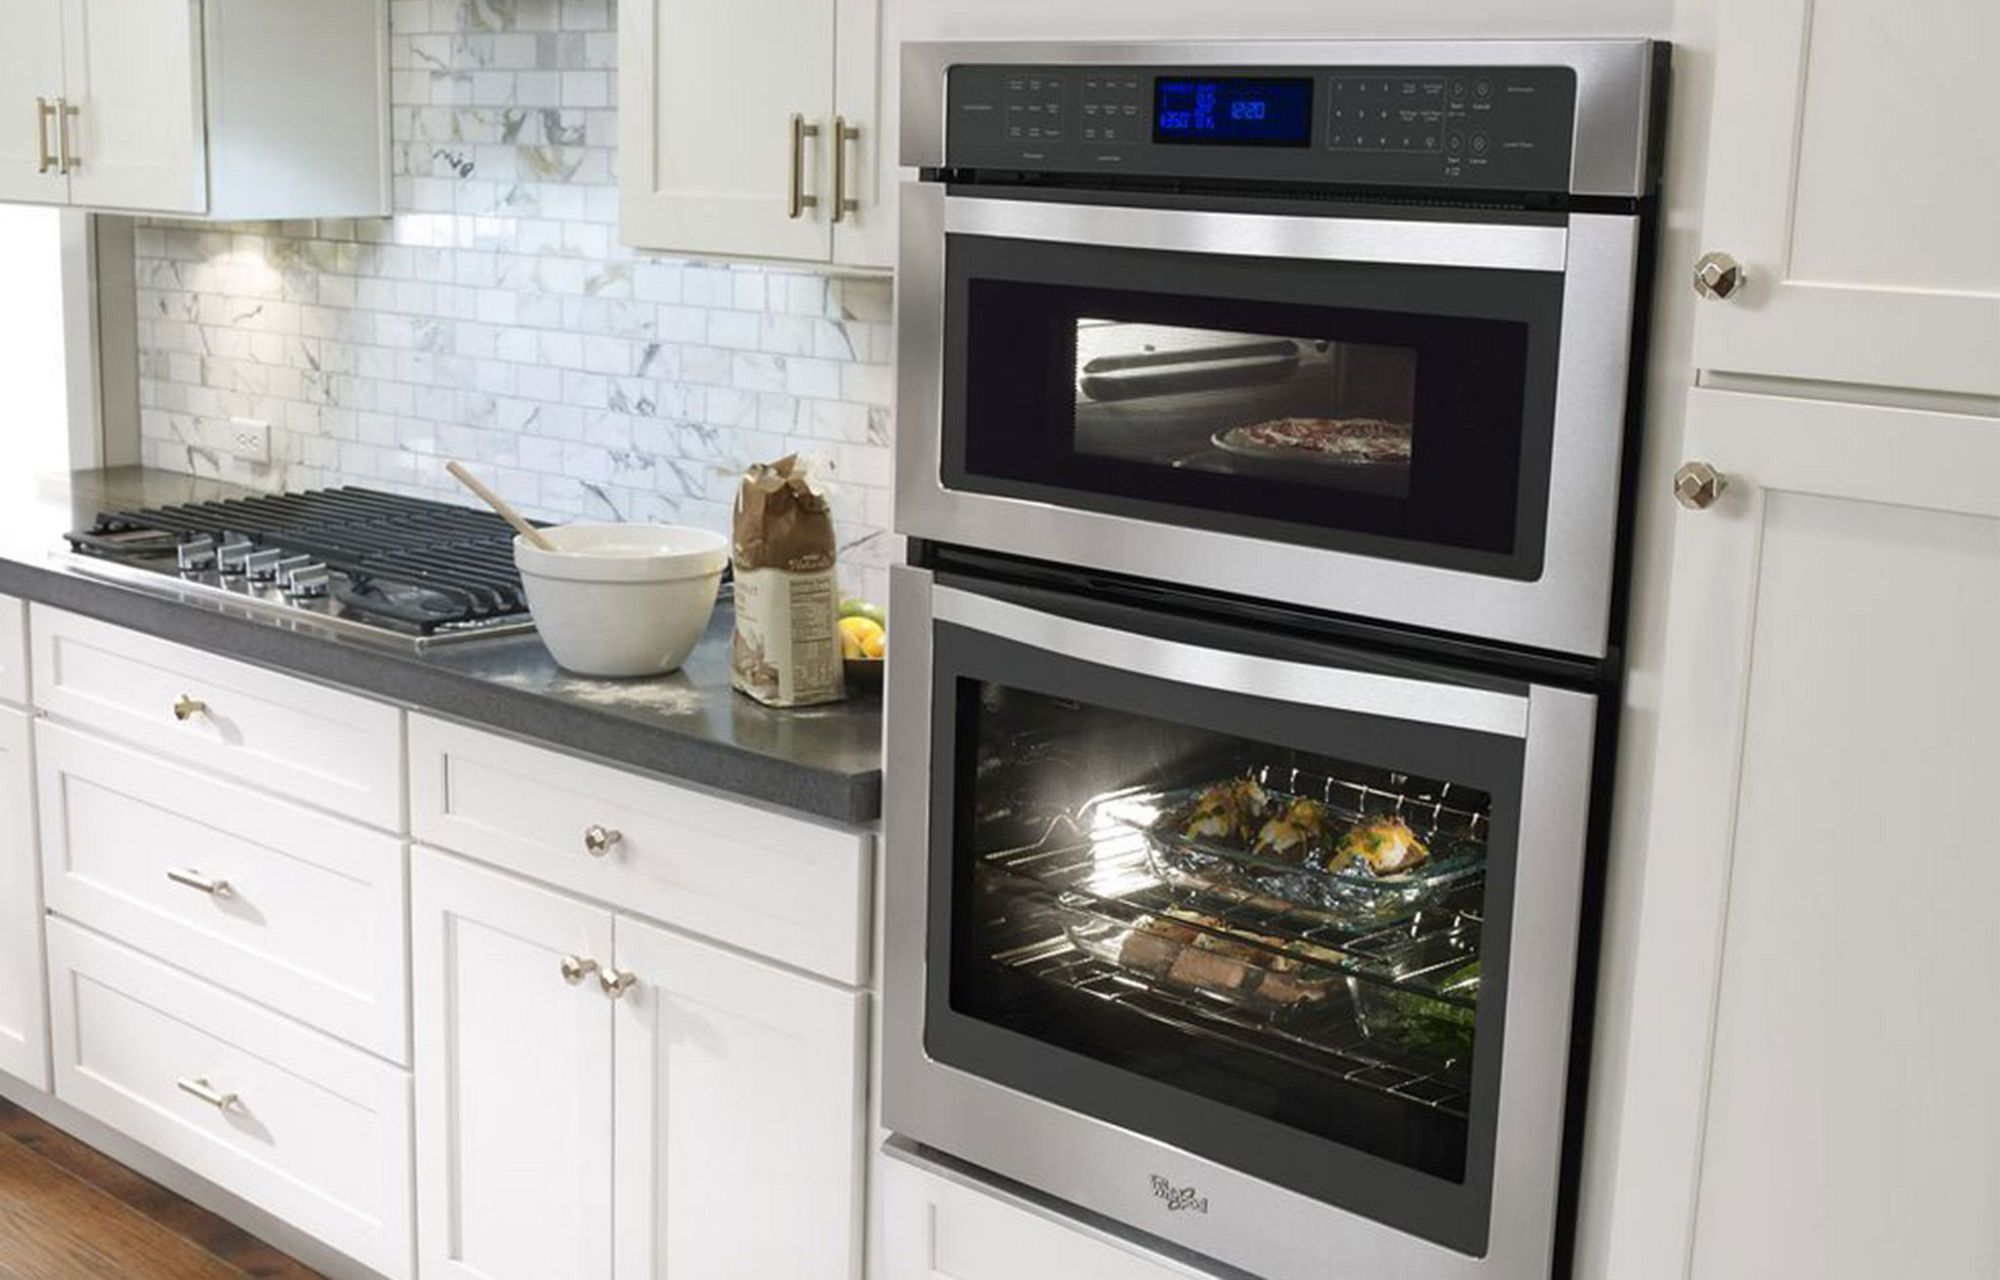 Whirlpool Cooktop And Oven